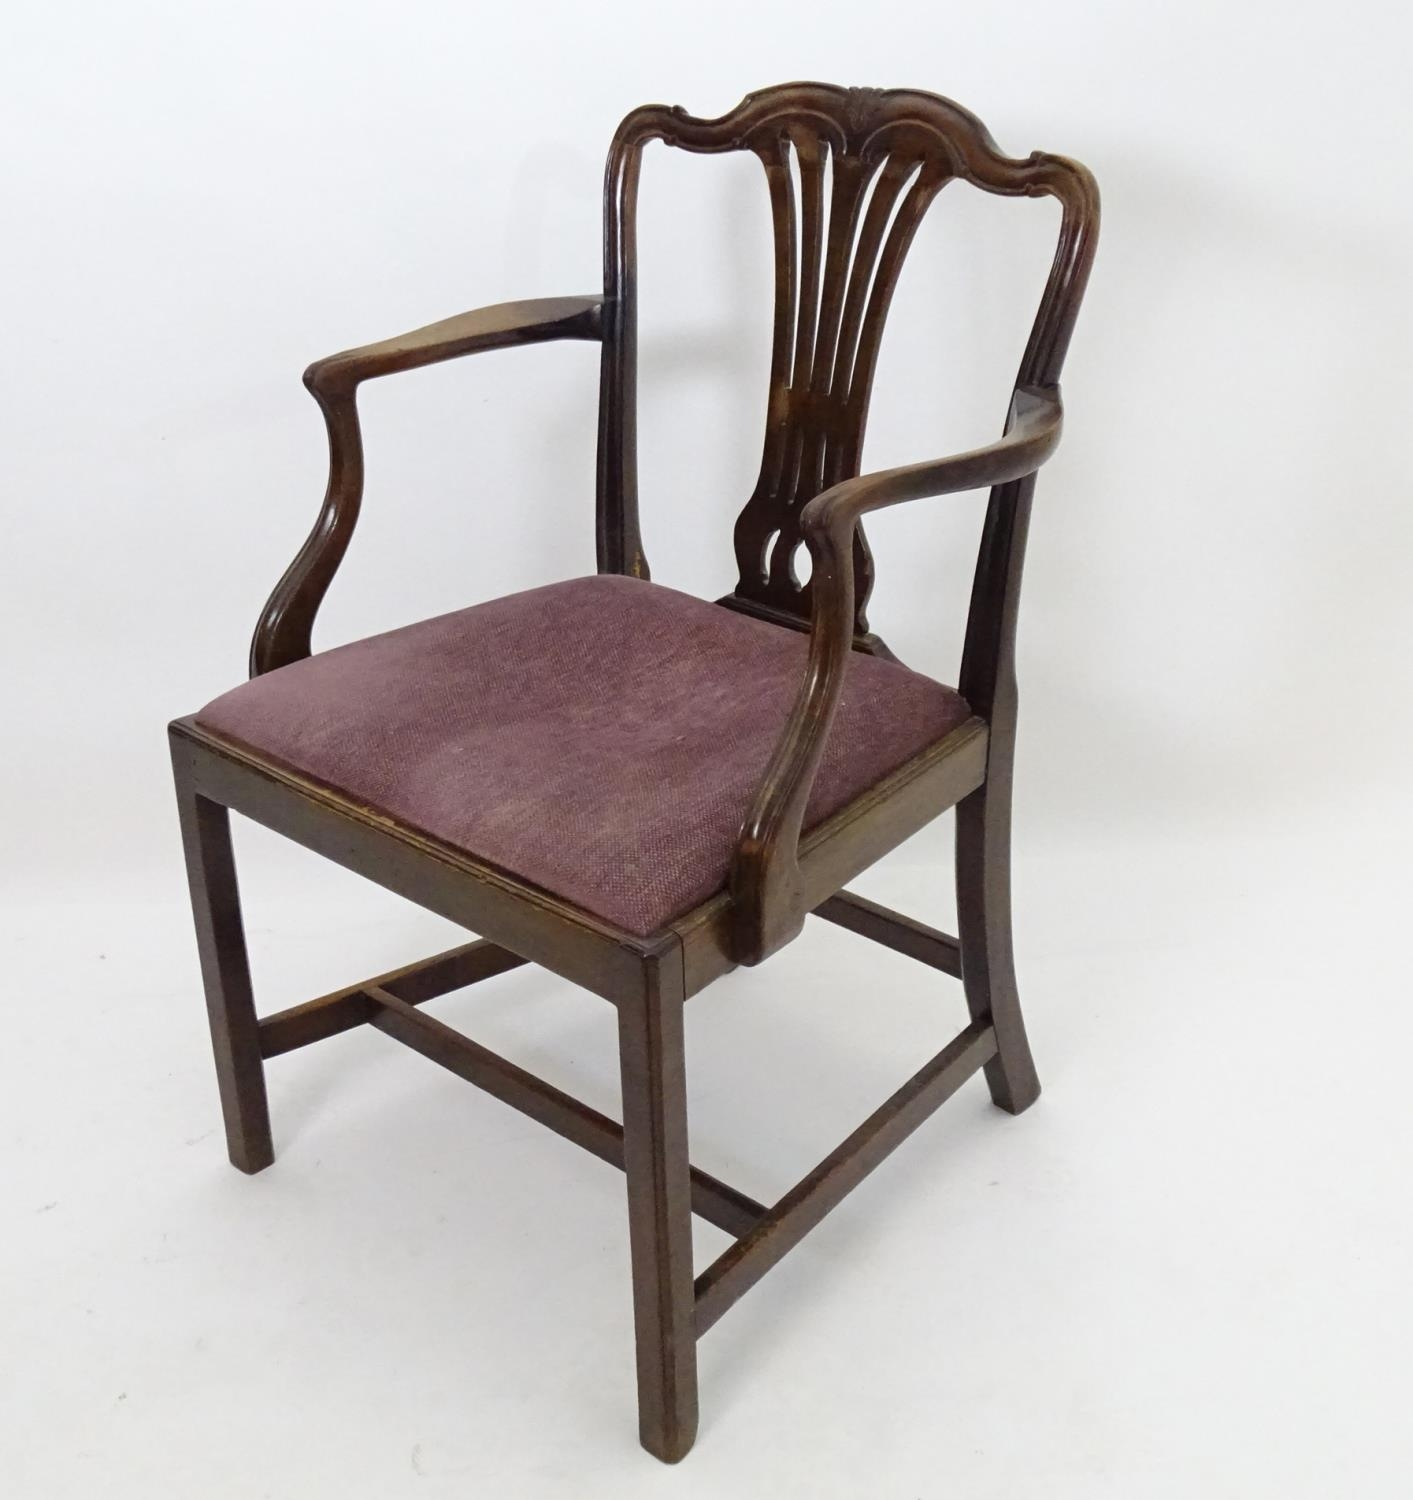 A 19thC mahogany carver chair with upholstered seat Please Note - we do not make reference to the